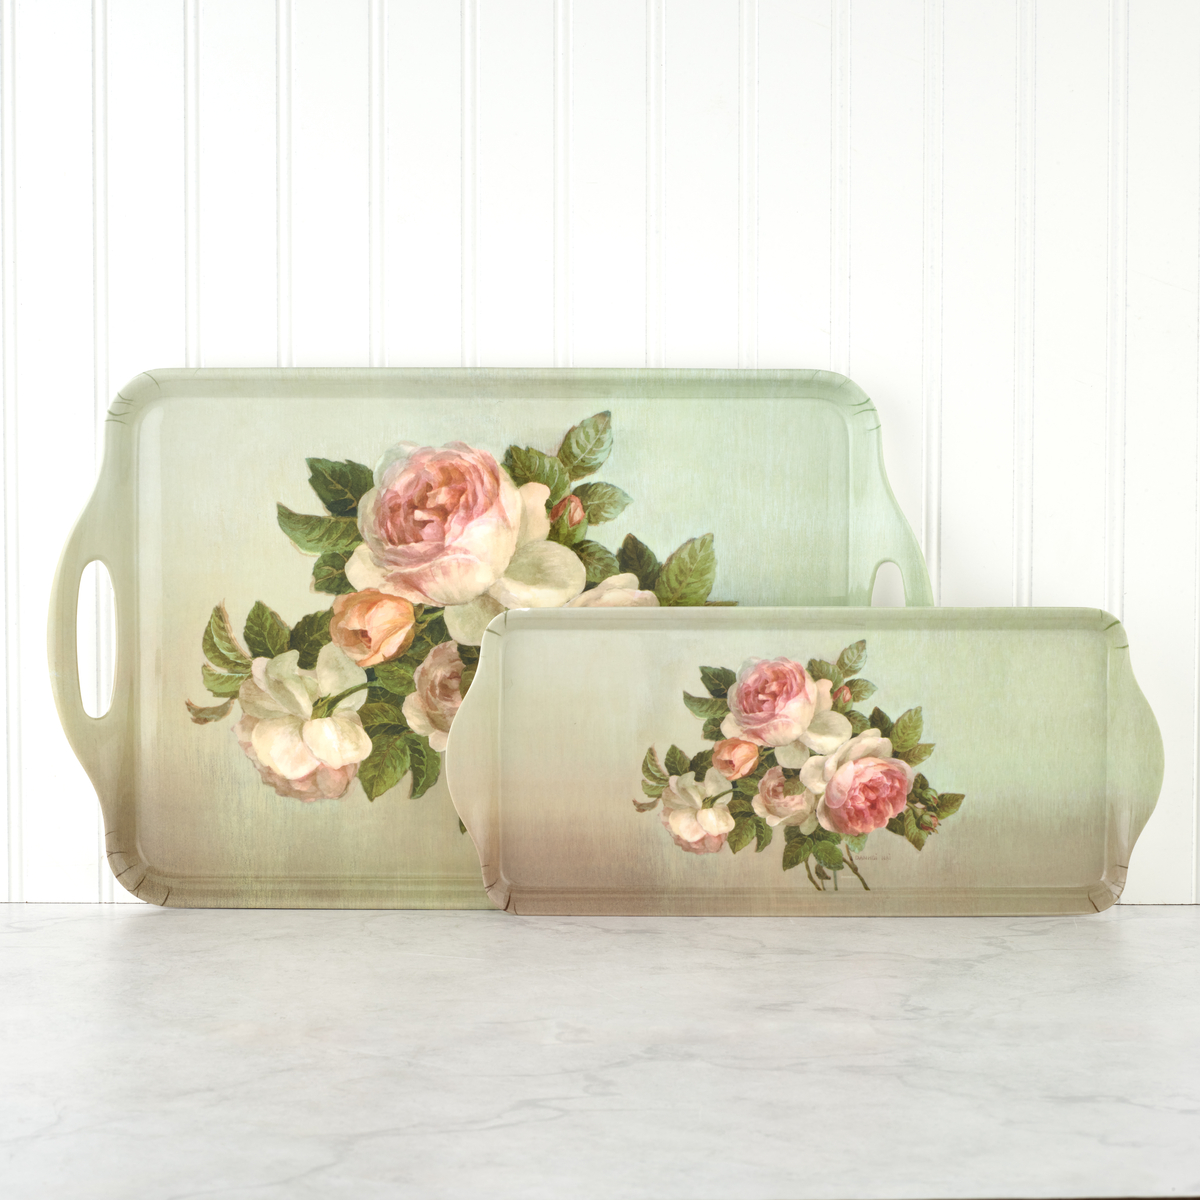 Pimpernel Antique Roses Sandwich Tray image number 3